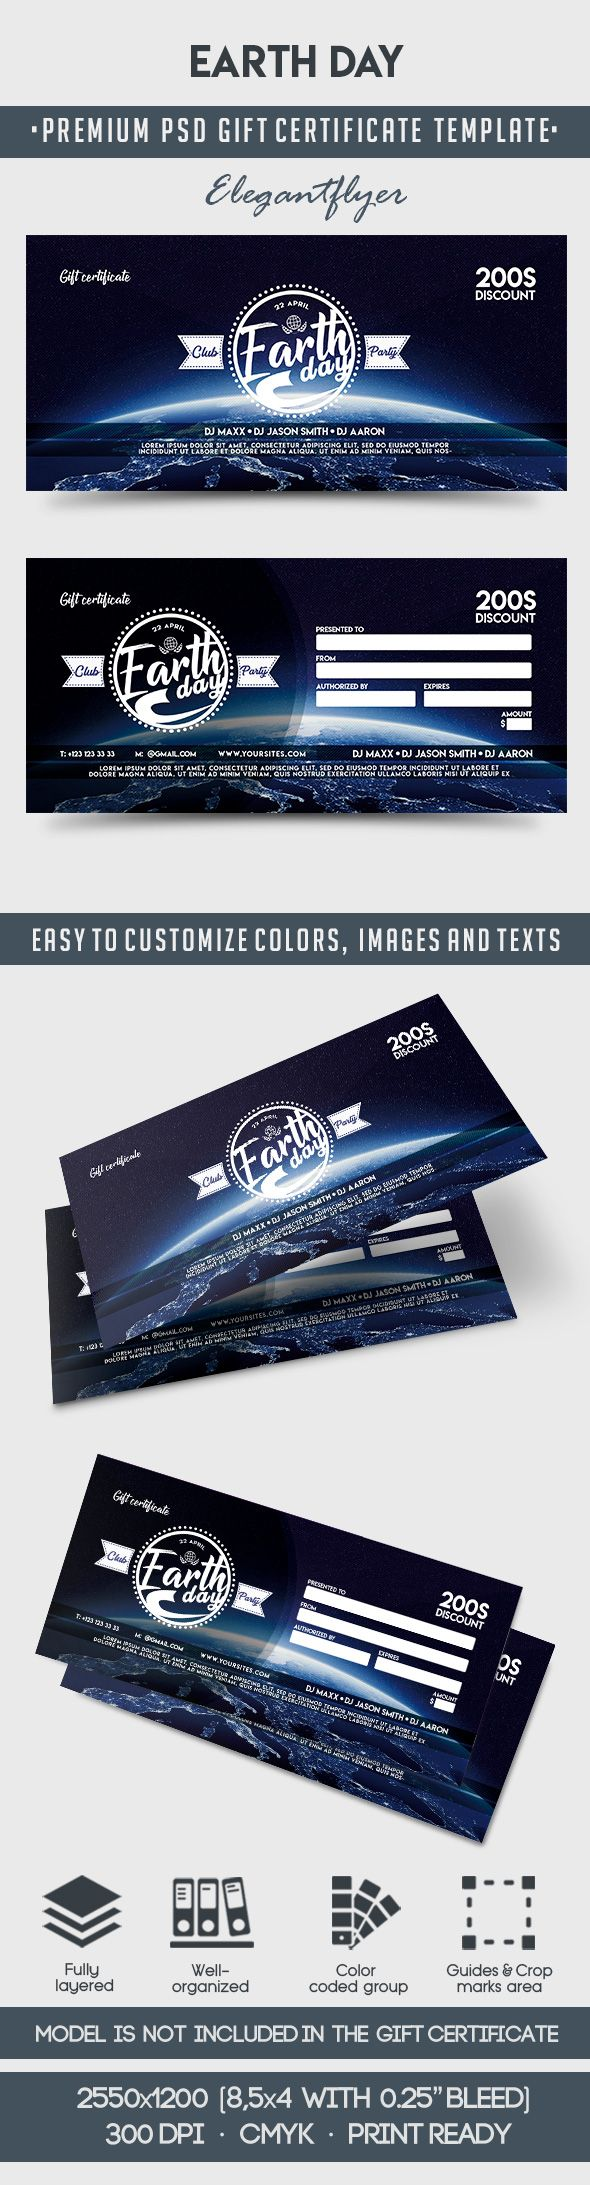 Earth Day – Premium Gift Certificate PSD Template